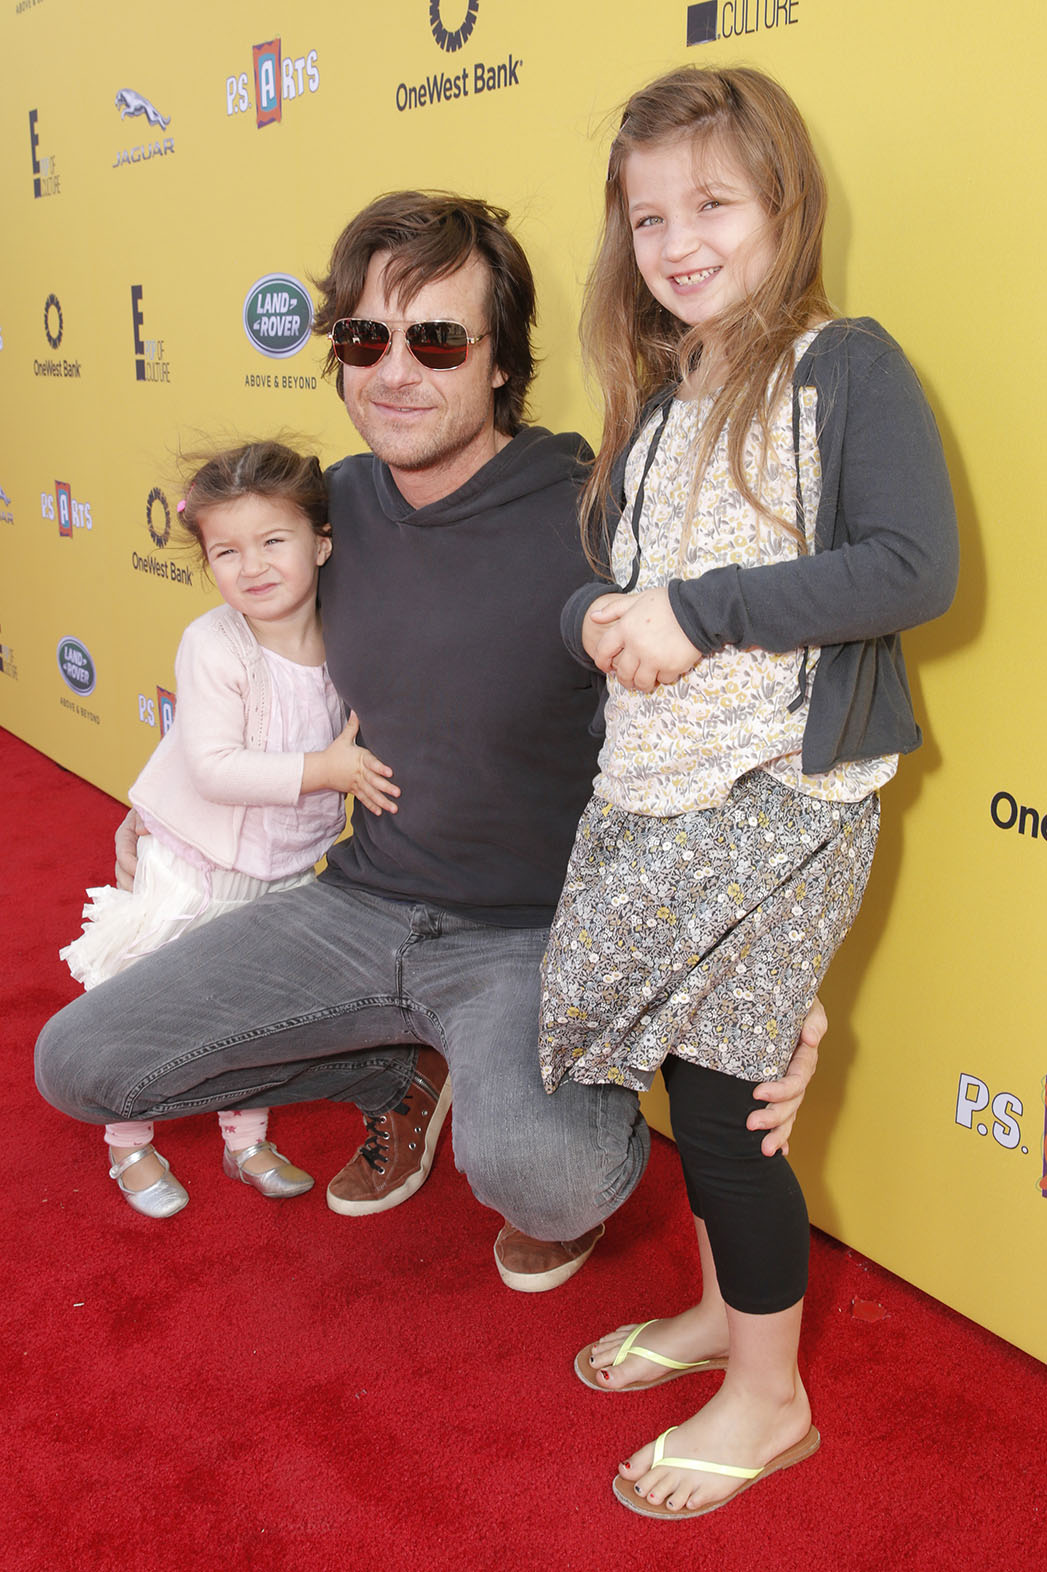 Jason Bateman with his two kids at P.S. Arts Express Yourself - p 2014